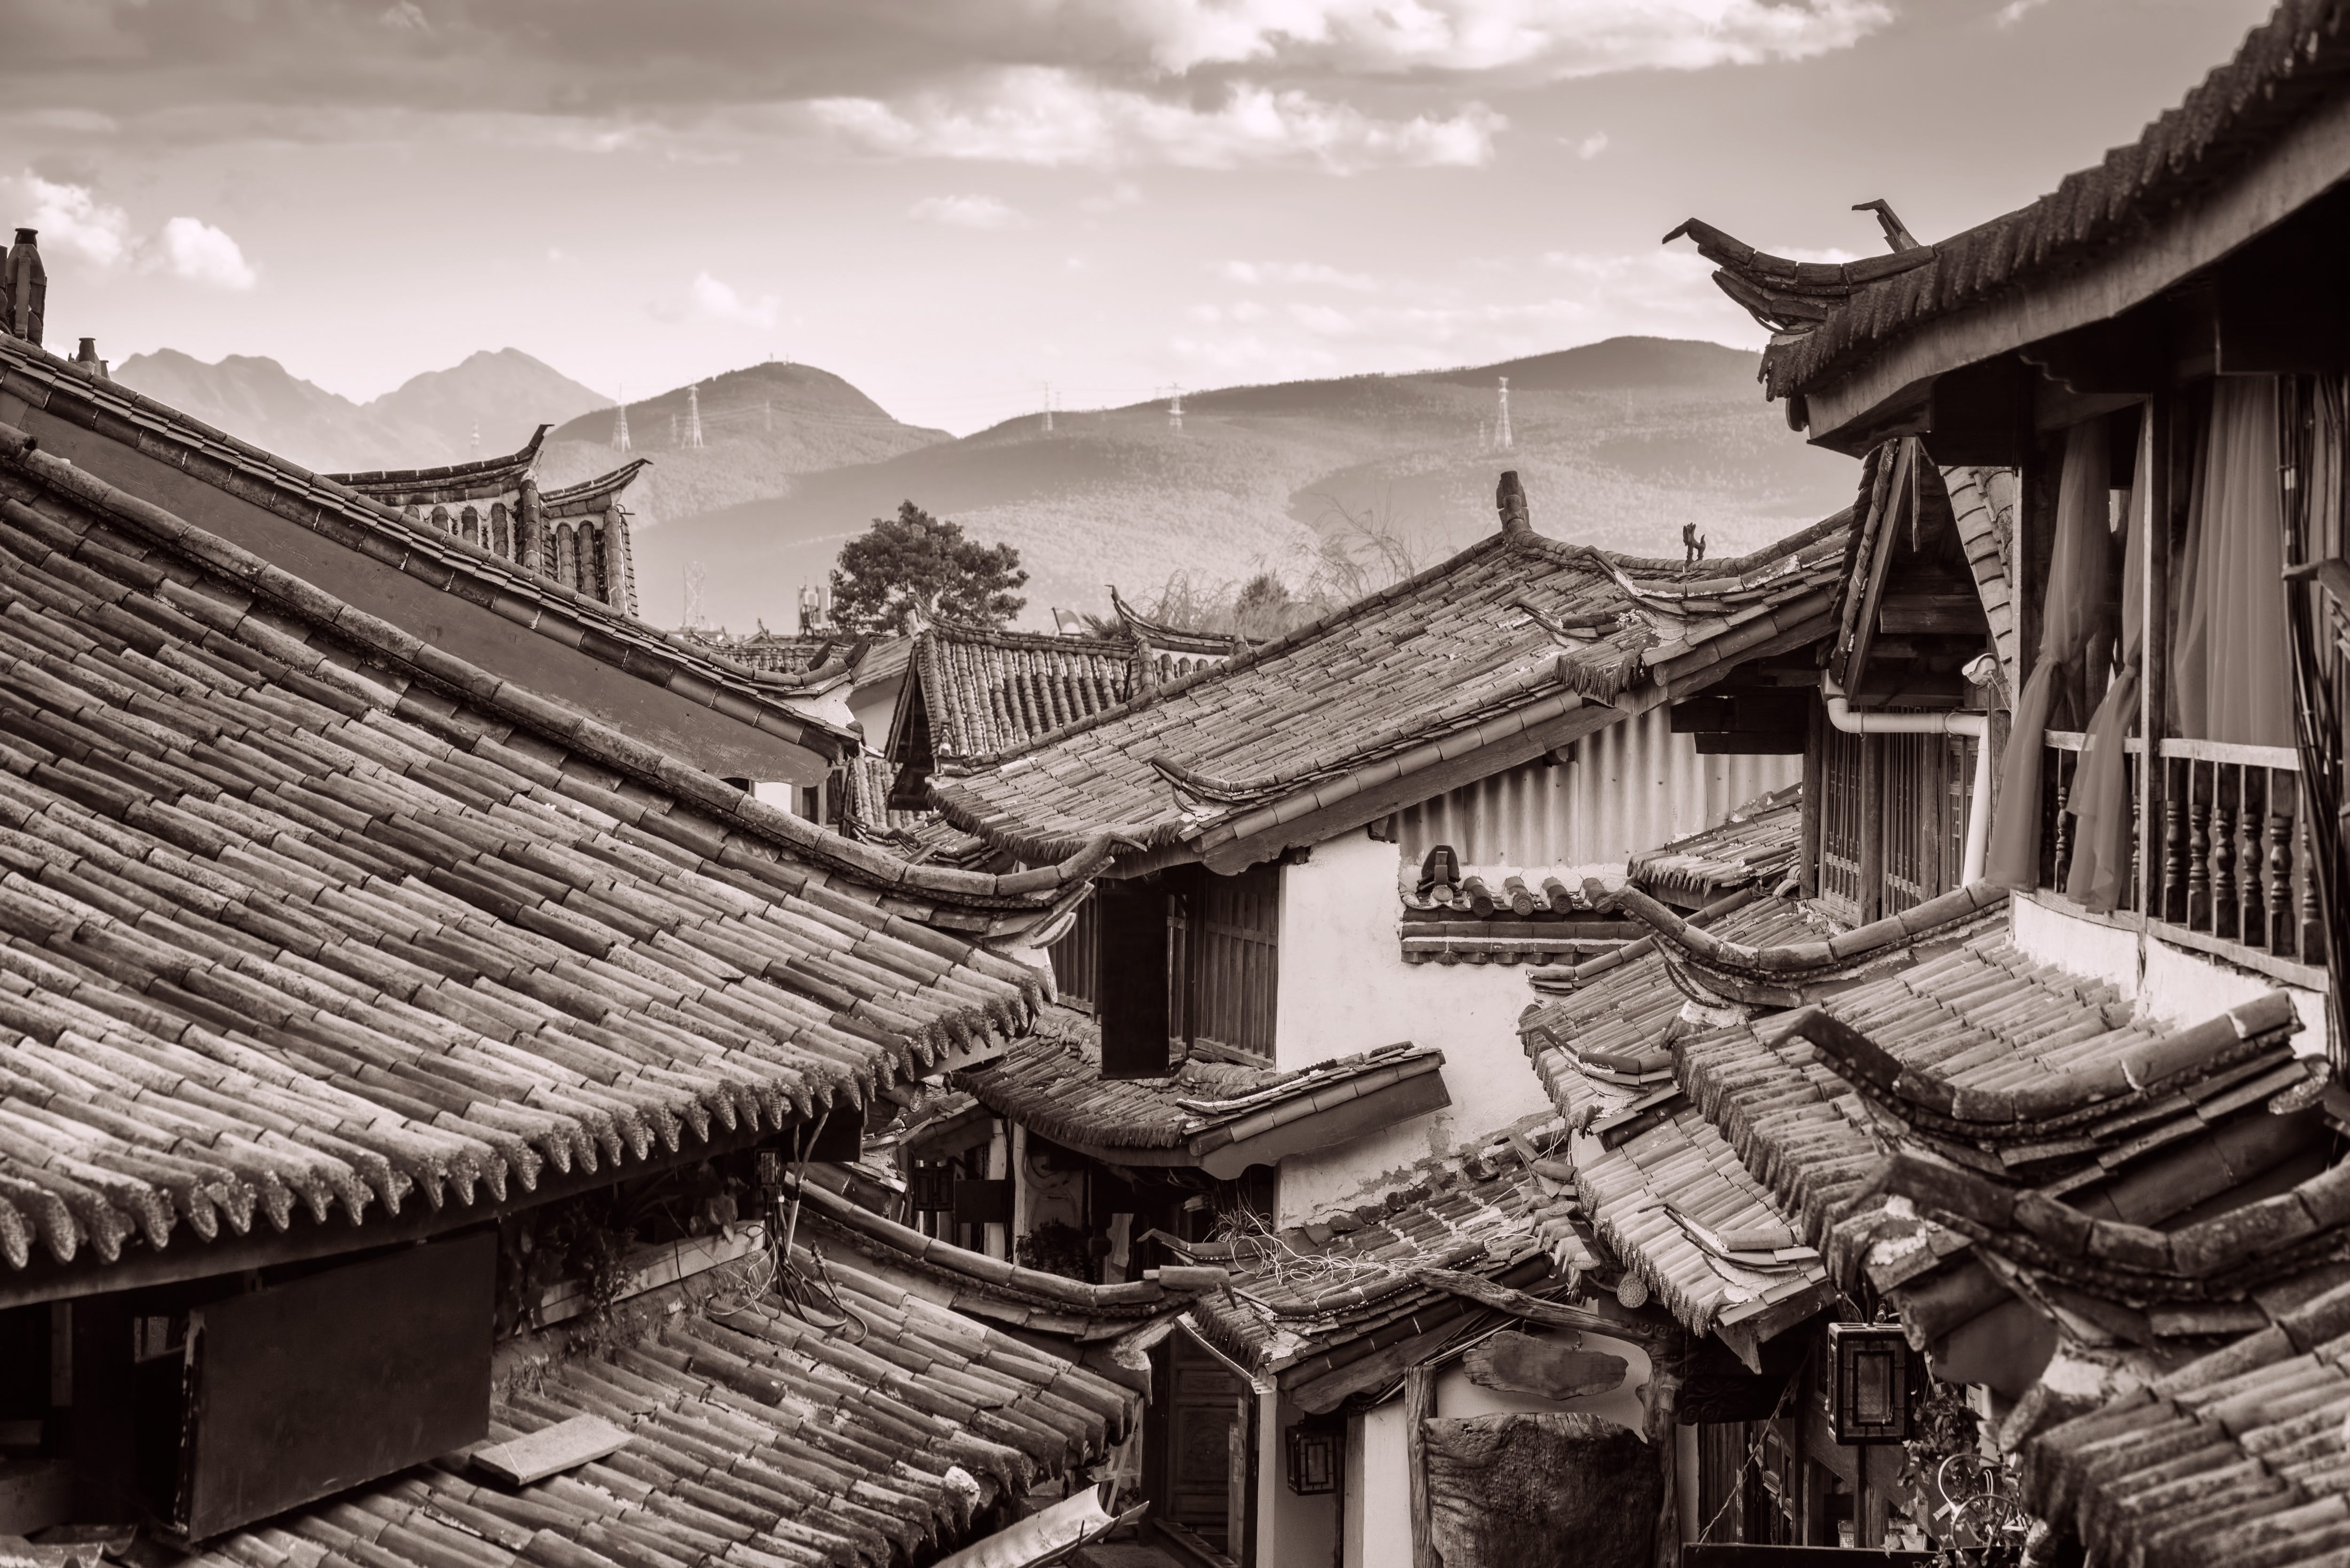 Scenic view of traditional Chinese tile roofs of houses in the Old Town of Lijiang, Yunnan province